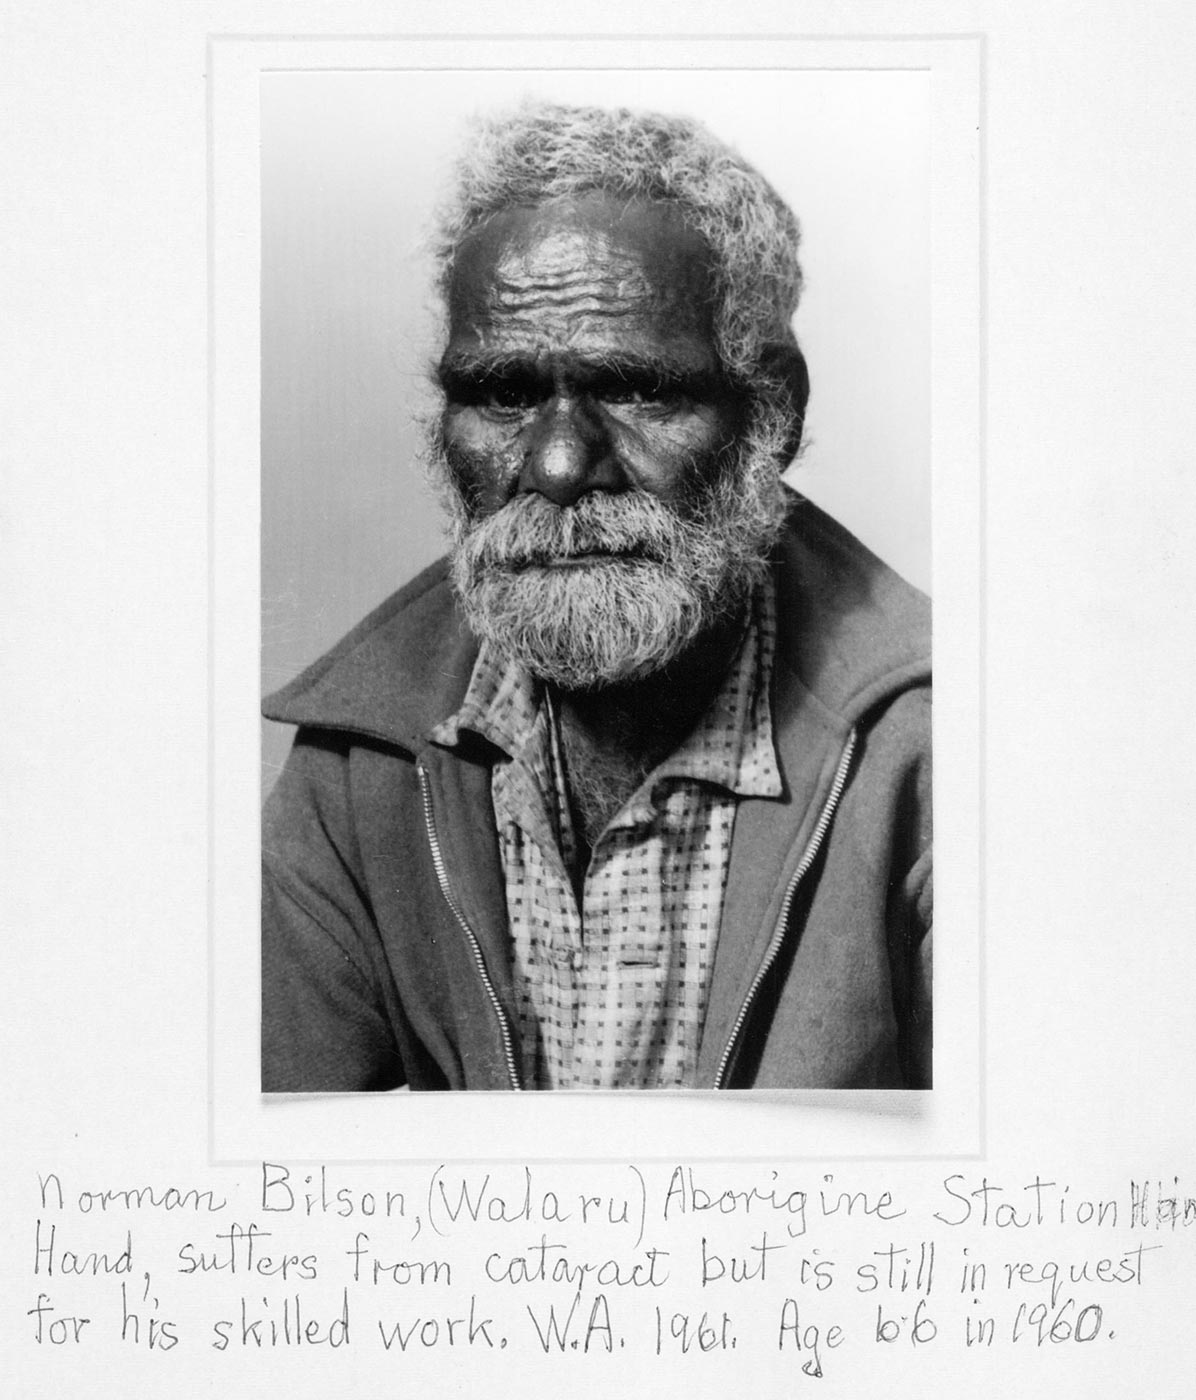 Written on the image by Mary Bennett: 'Norman Bilson, (Walaru), Aborigine Station Hand, suffers from cataract but is still in request for his skilled work. W.A. 1961. Age 66 in 1960.' - click to view larger image